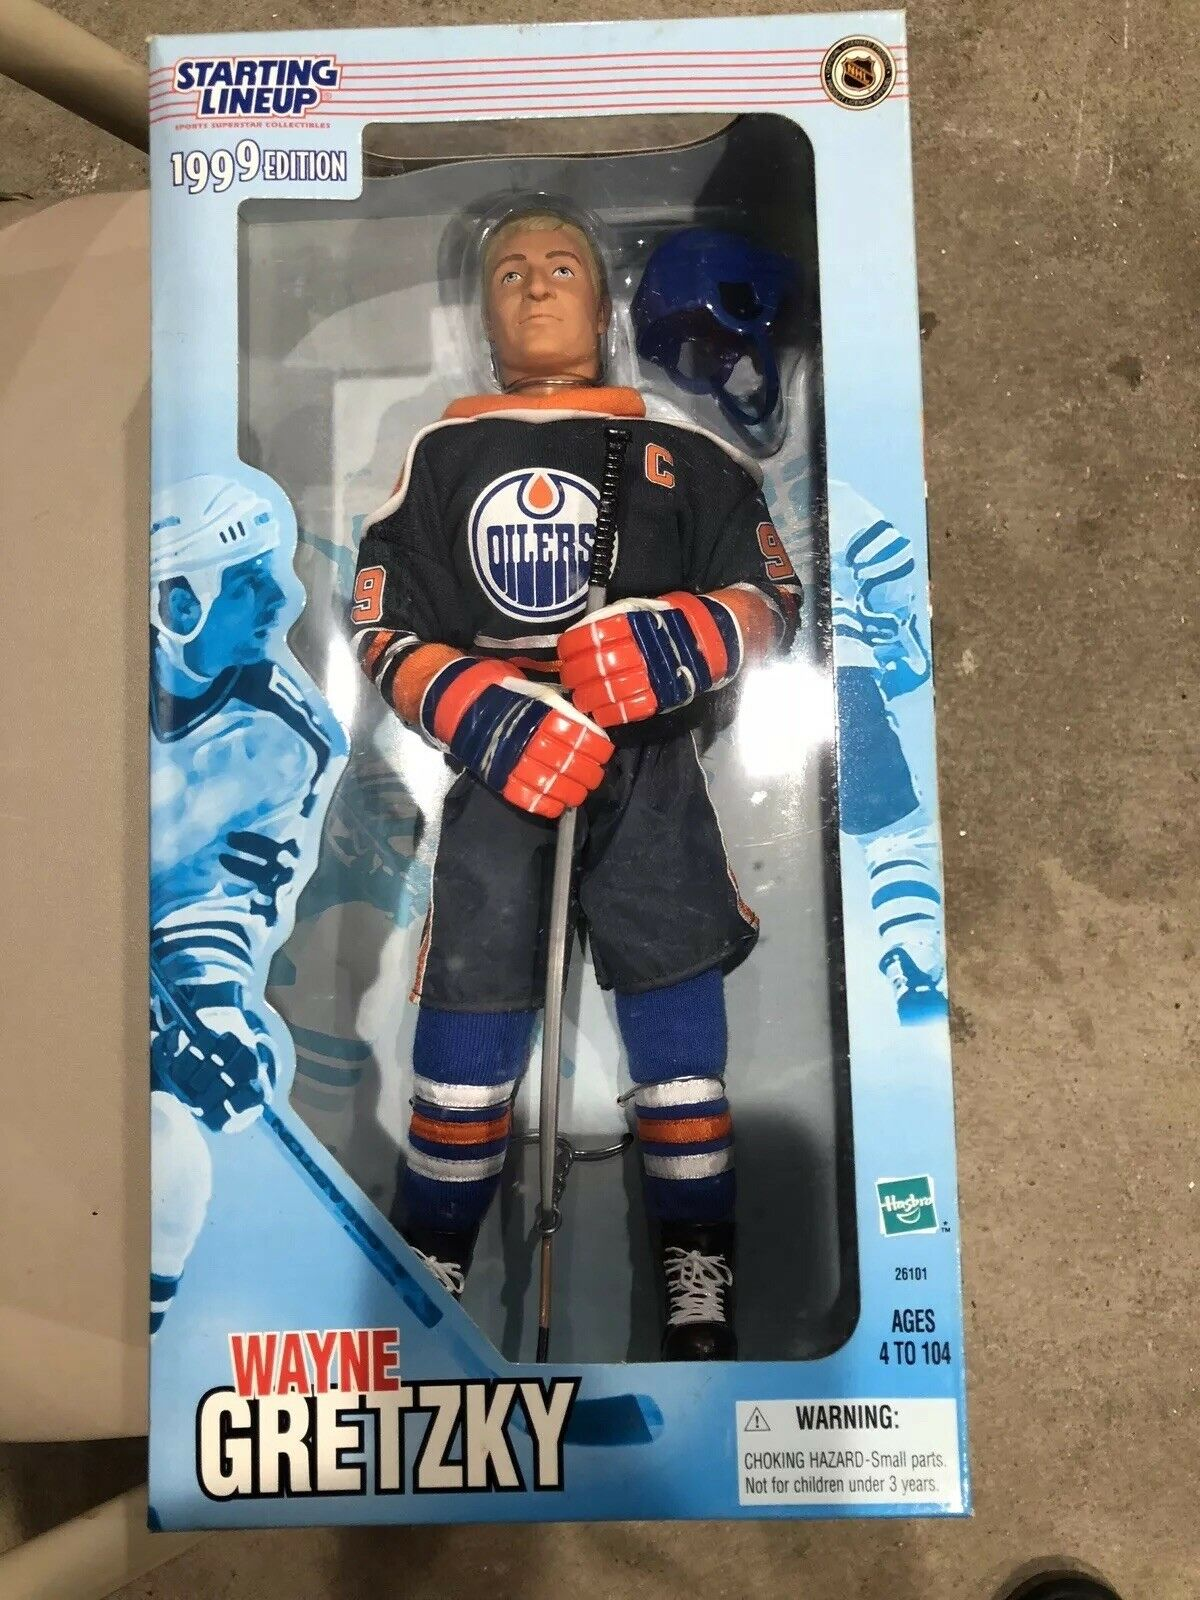 1999 Starting Lineup WAYNE GRETZKY 12 Inch Mint Oilers Rangers